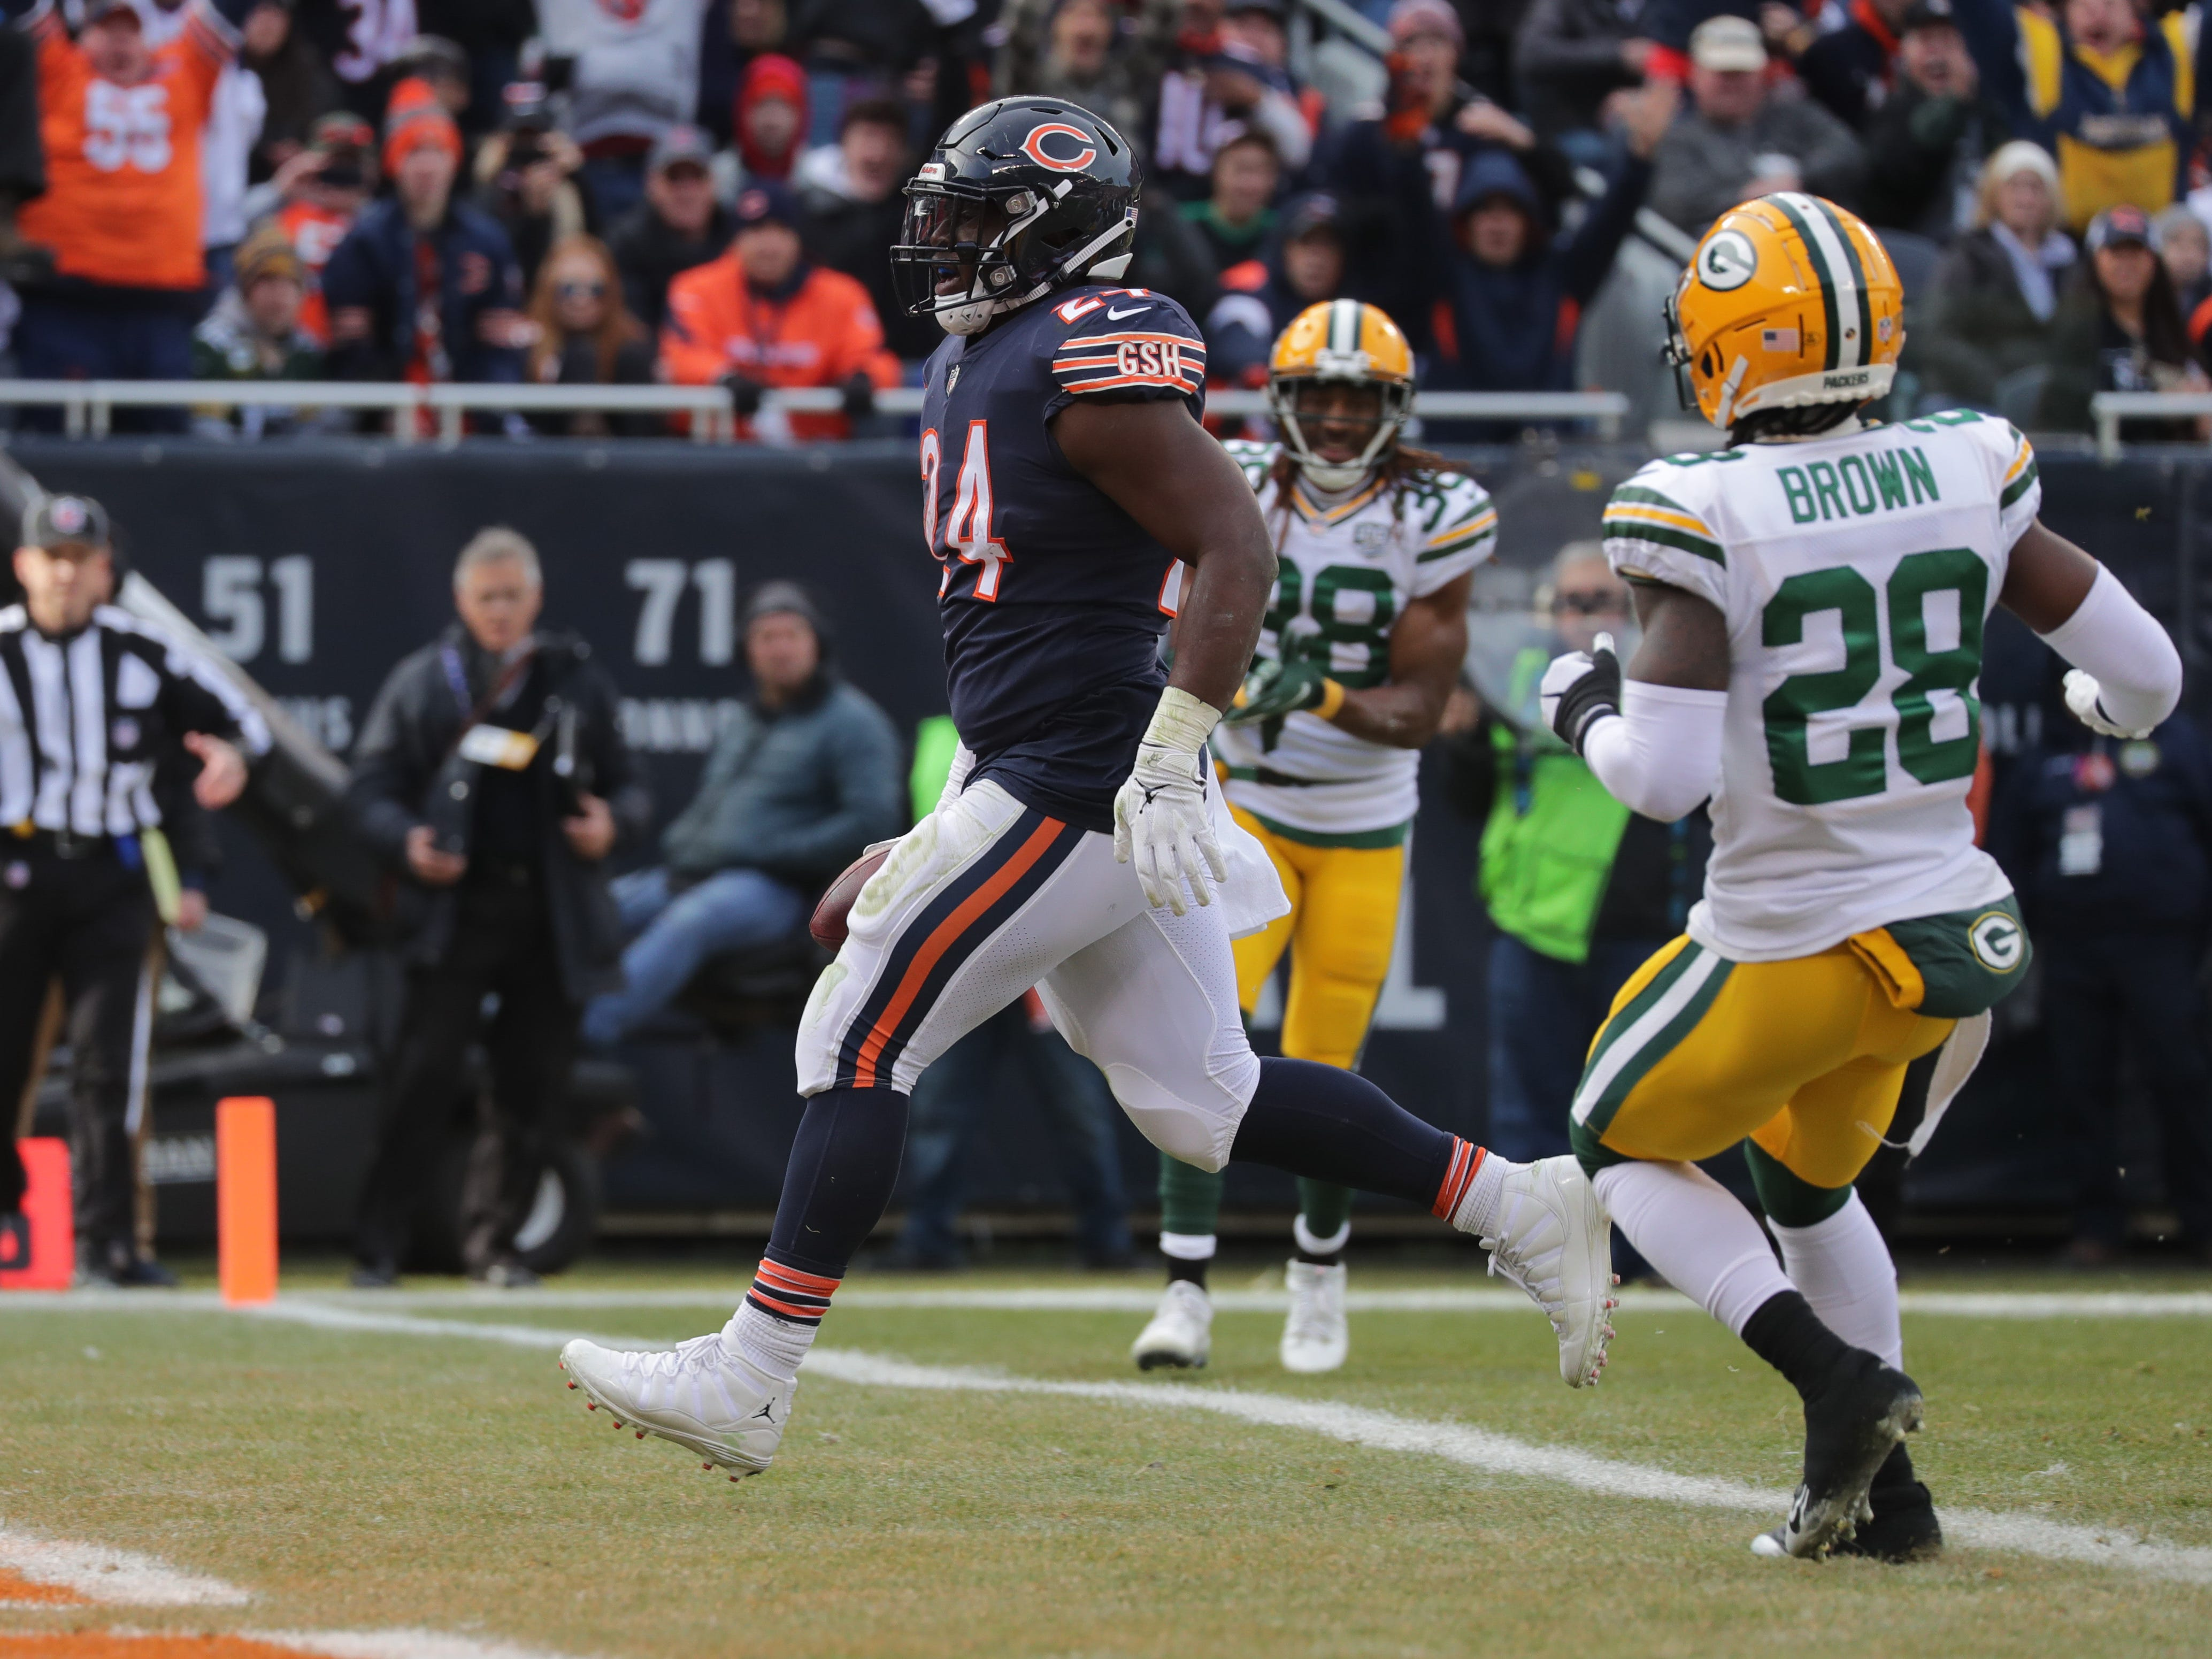 Chicago Bears running back Jordan Howard (24) scores a touchdown n nine yard run during the first quarter of their game against the Green Bay Packers Sunday, December 25, 2018 at Soldier Field in Chicago, Ill.  MARK HOFFMAN/MILWAUKEE JOURNAL SENTINEL